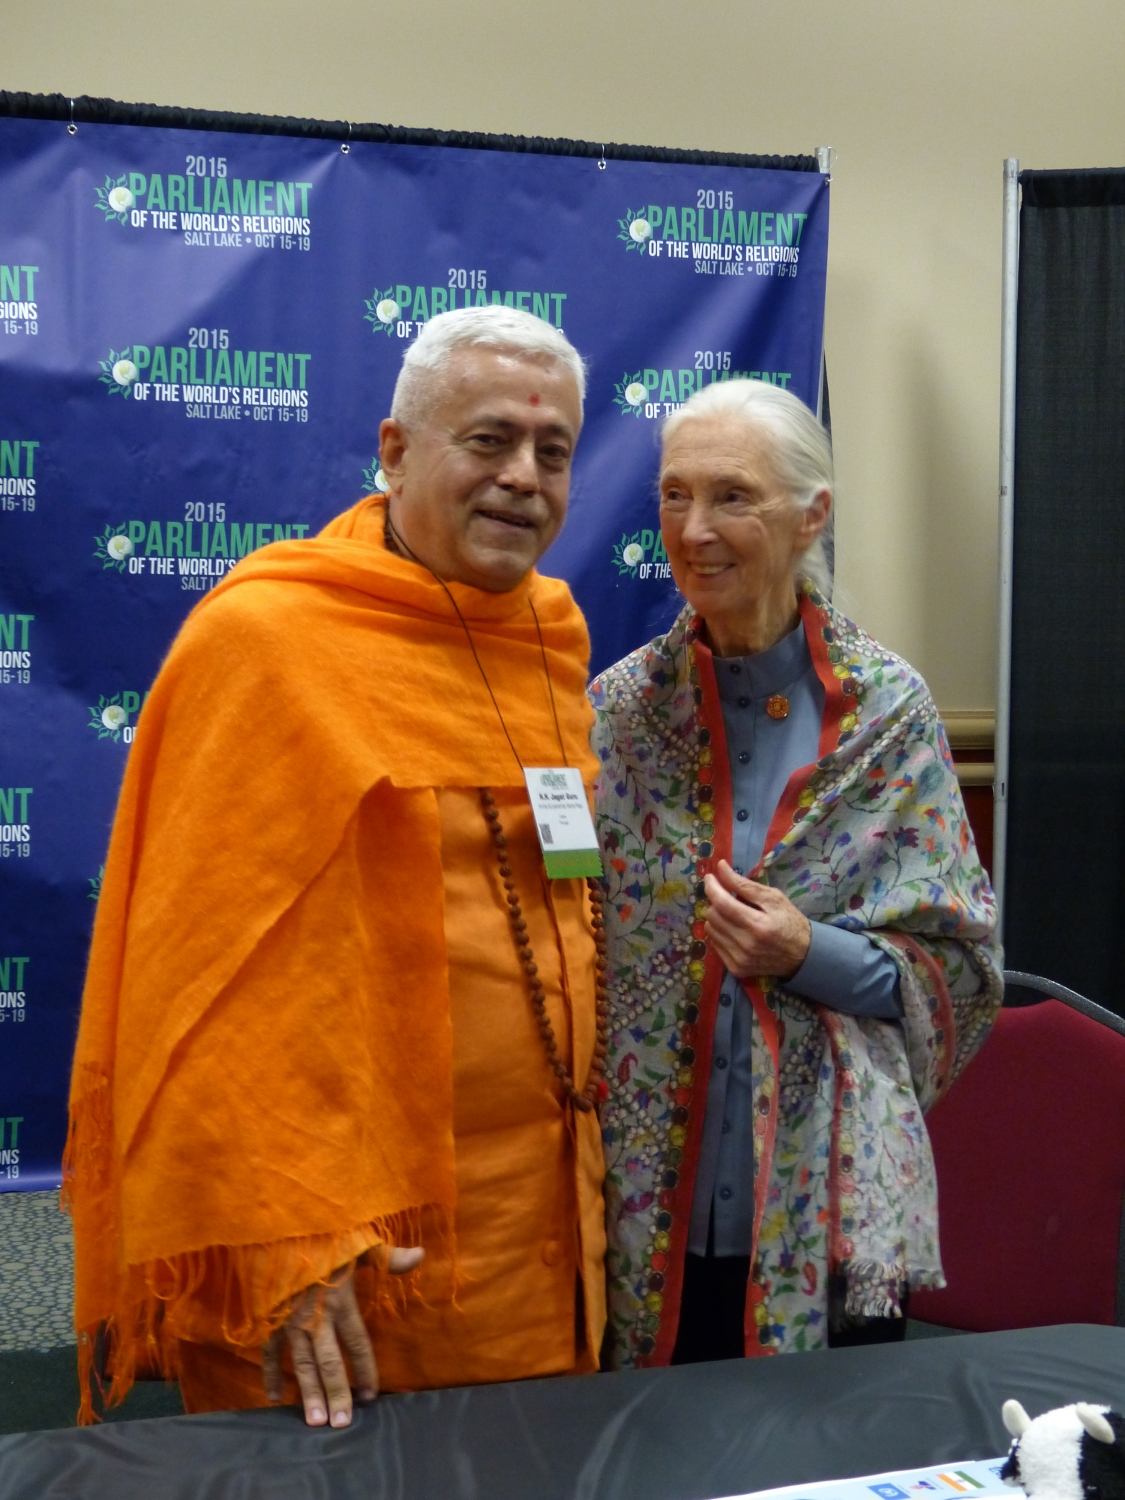 With Jane Goodall (primatologist who studied Gorillas)